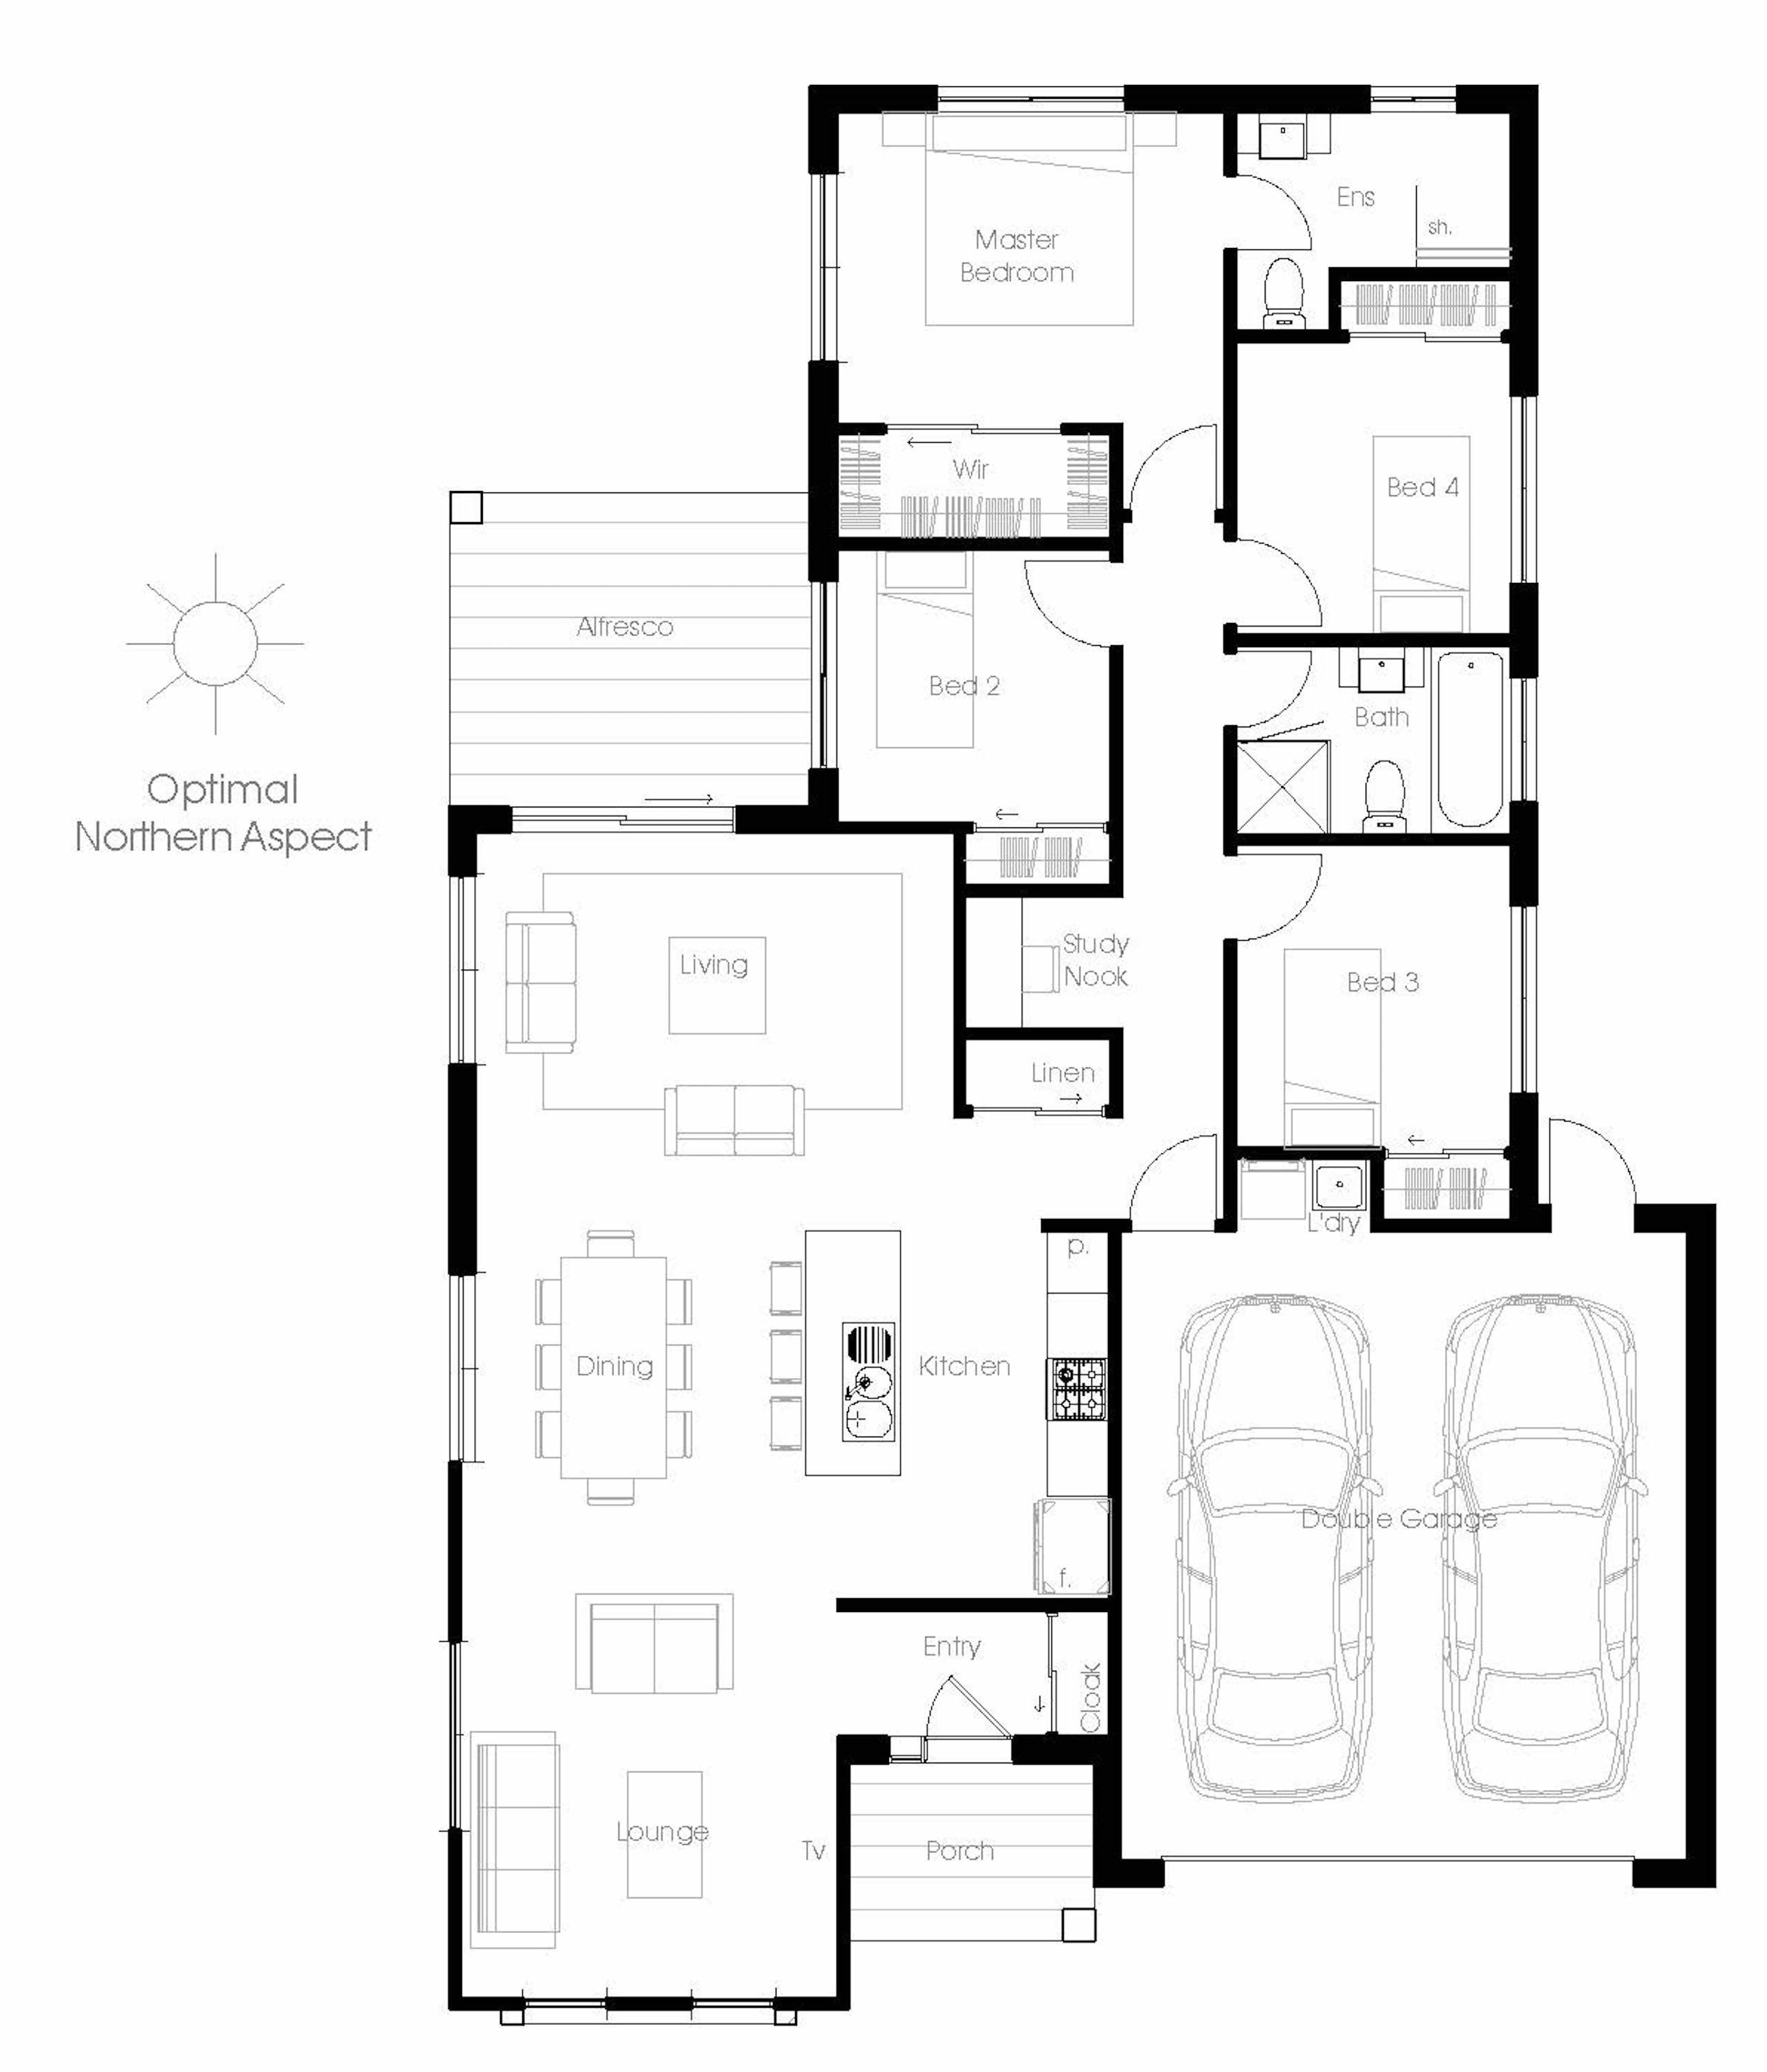 Small Efficient House Plans Arsitektur Rumah Pedesaan Arsitektur Rumah